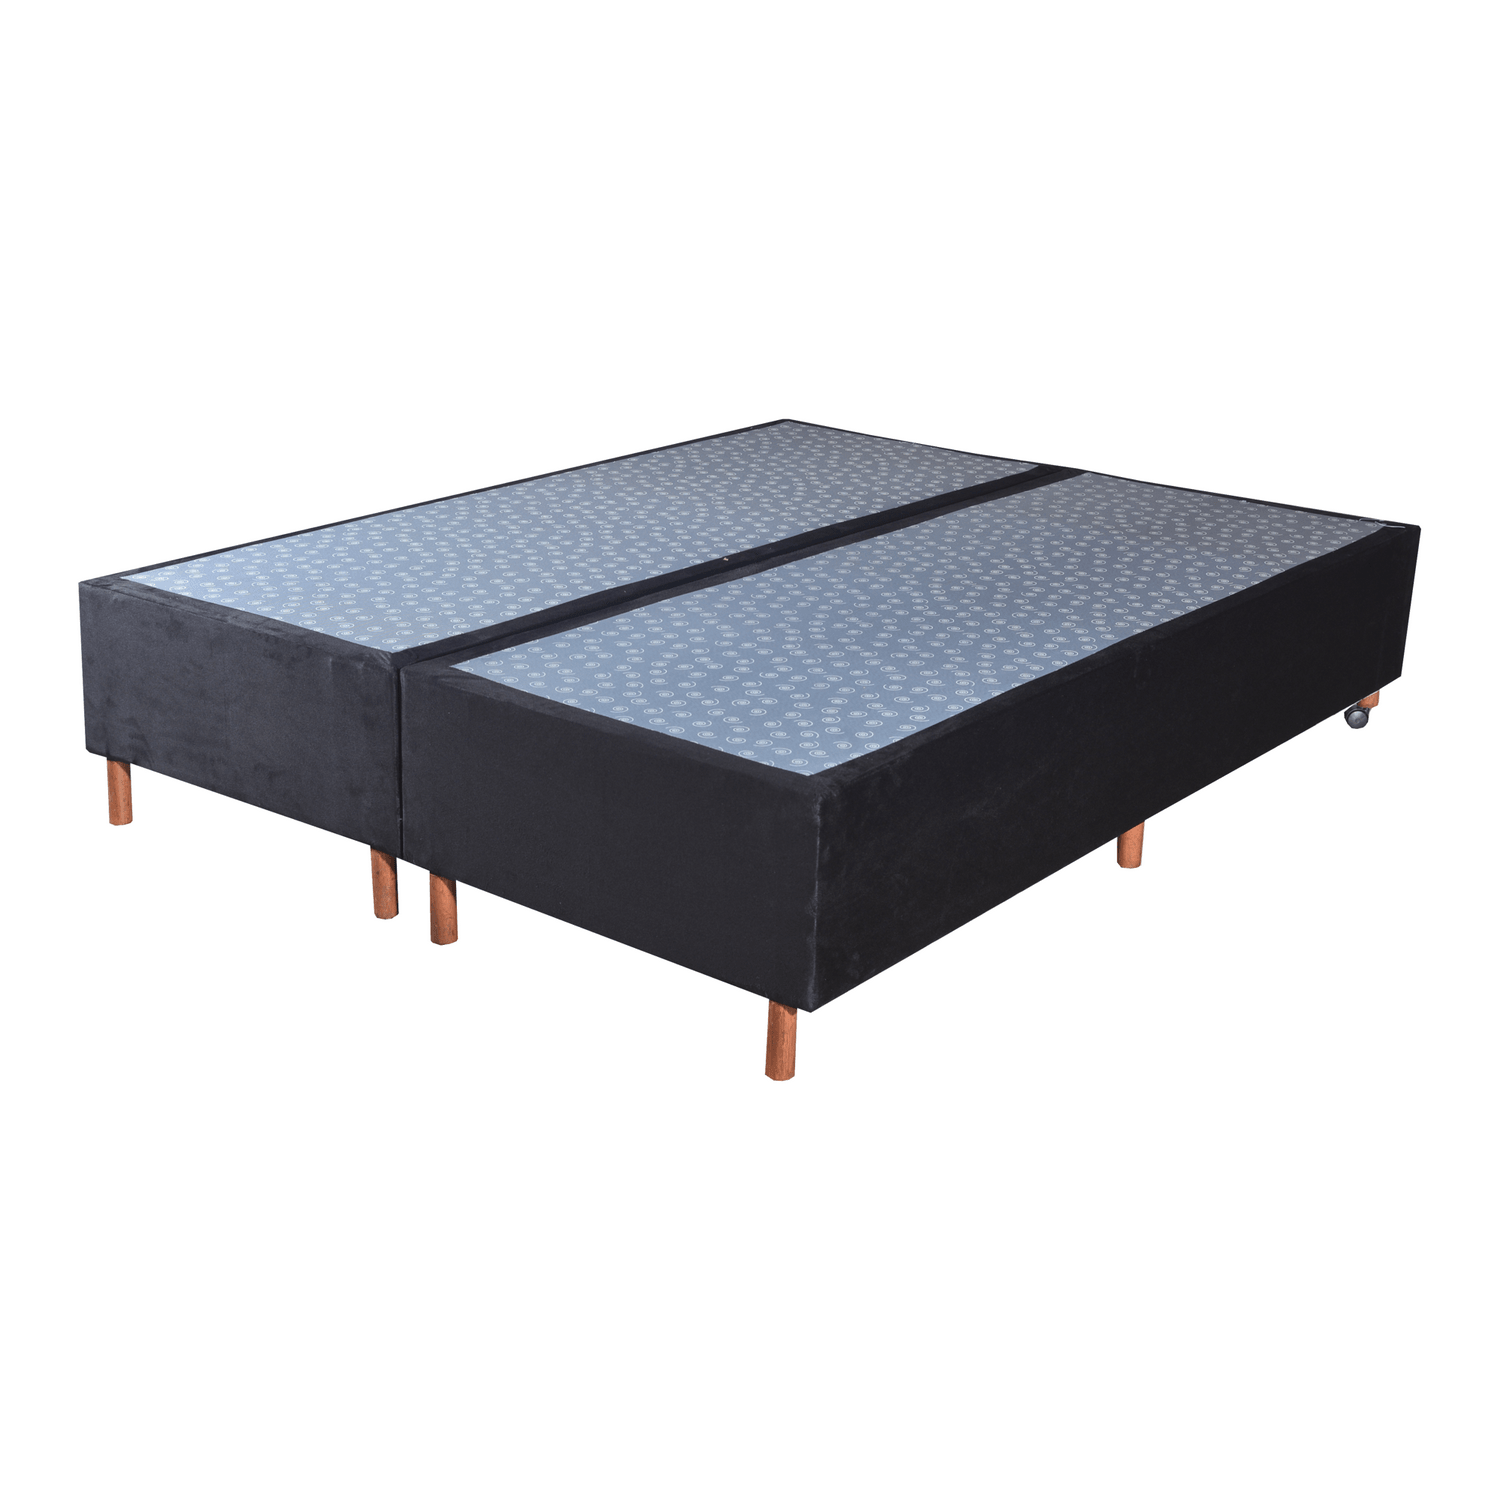 Cama Box Base King Veludo Preto 193x203x25